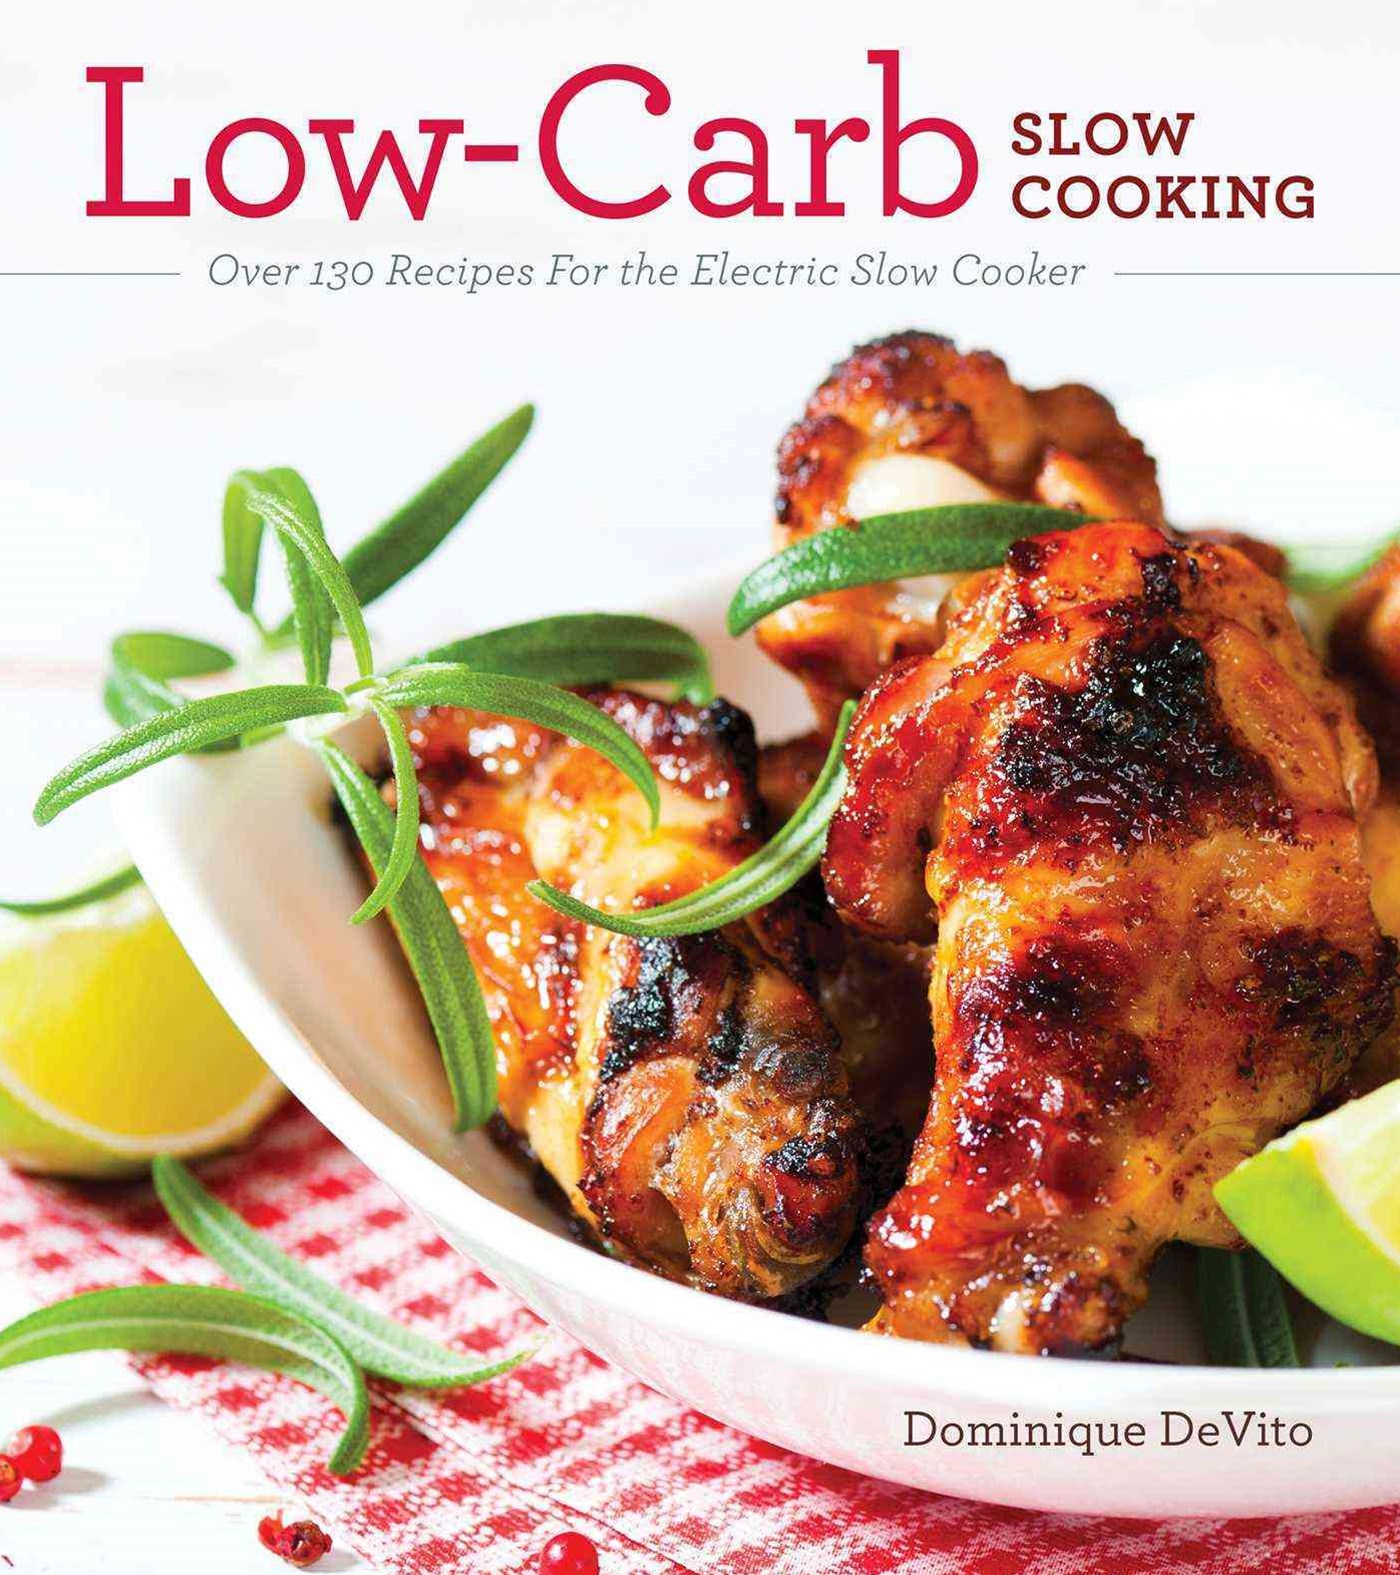 Low-Carb Slow Cooking: Over 130 Recipes For the Electric Slow Cooker